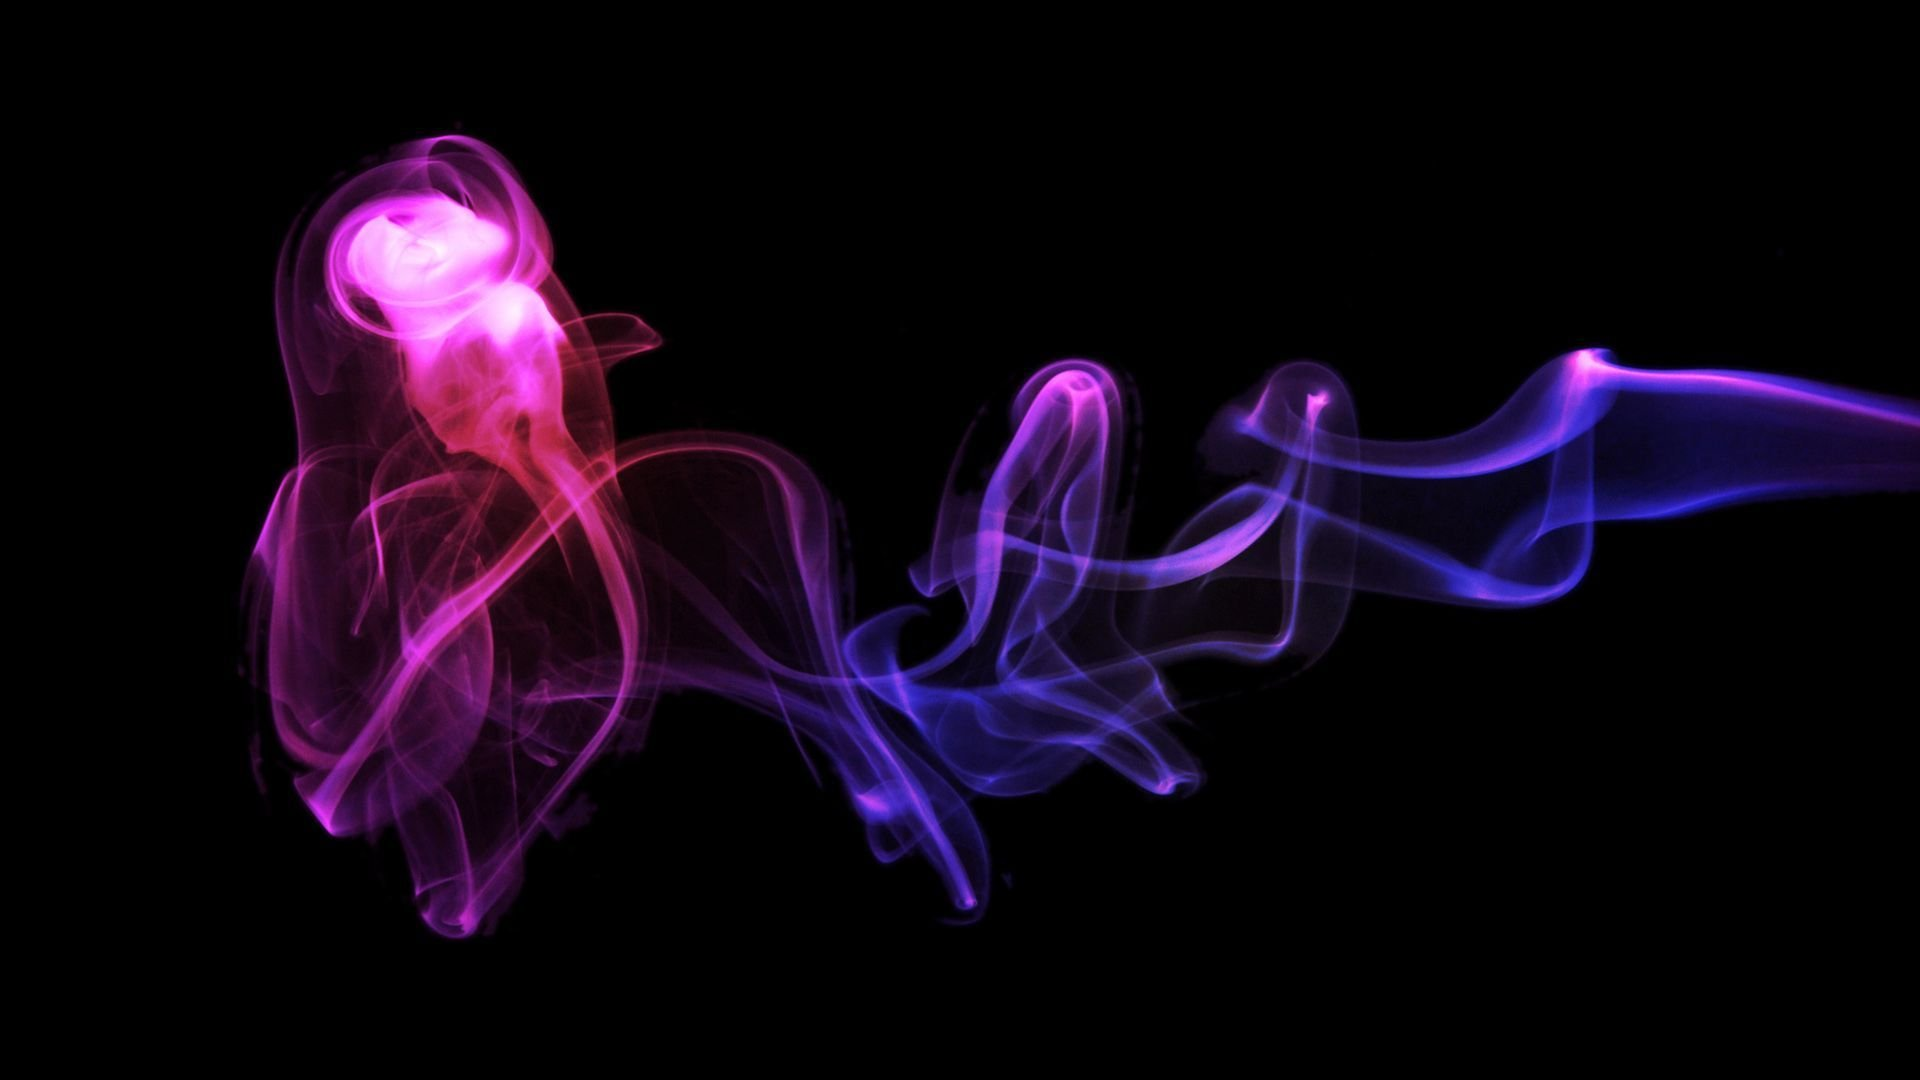 abstract hd wallpapers neon sneakers - photo #13